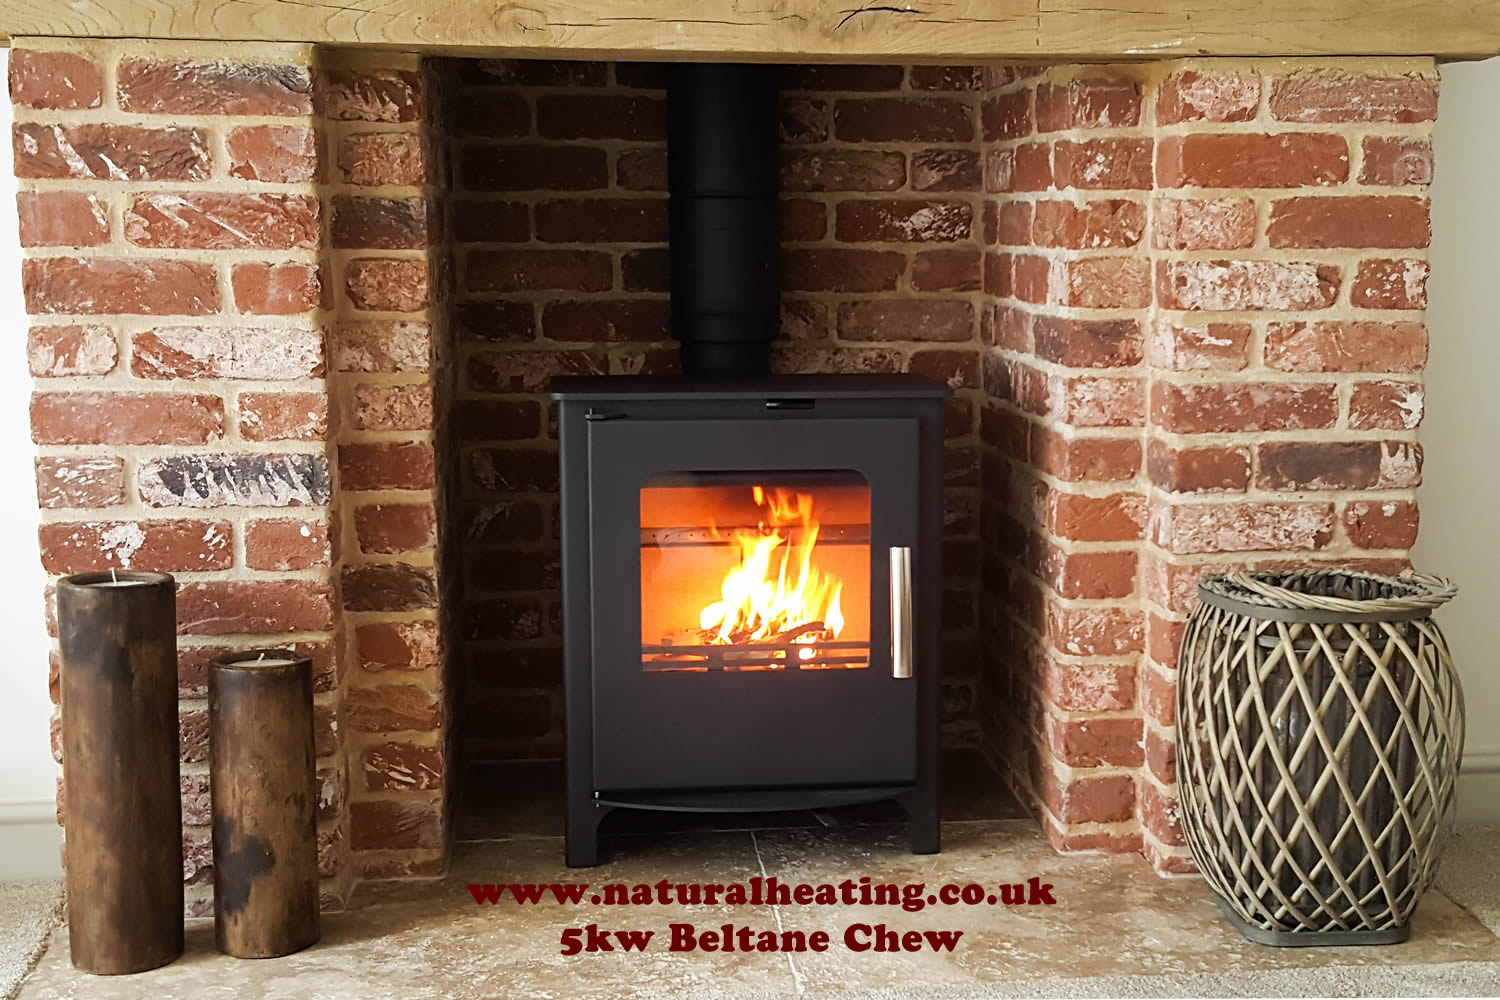 Beltane Chew 5kw Stove - Multi Fuel and Wood burning / Smoke ...